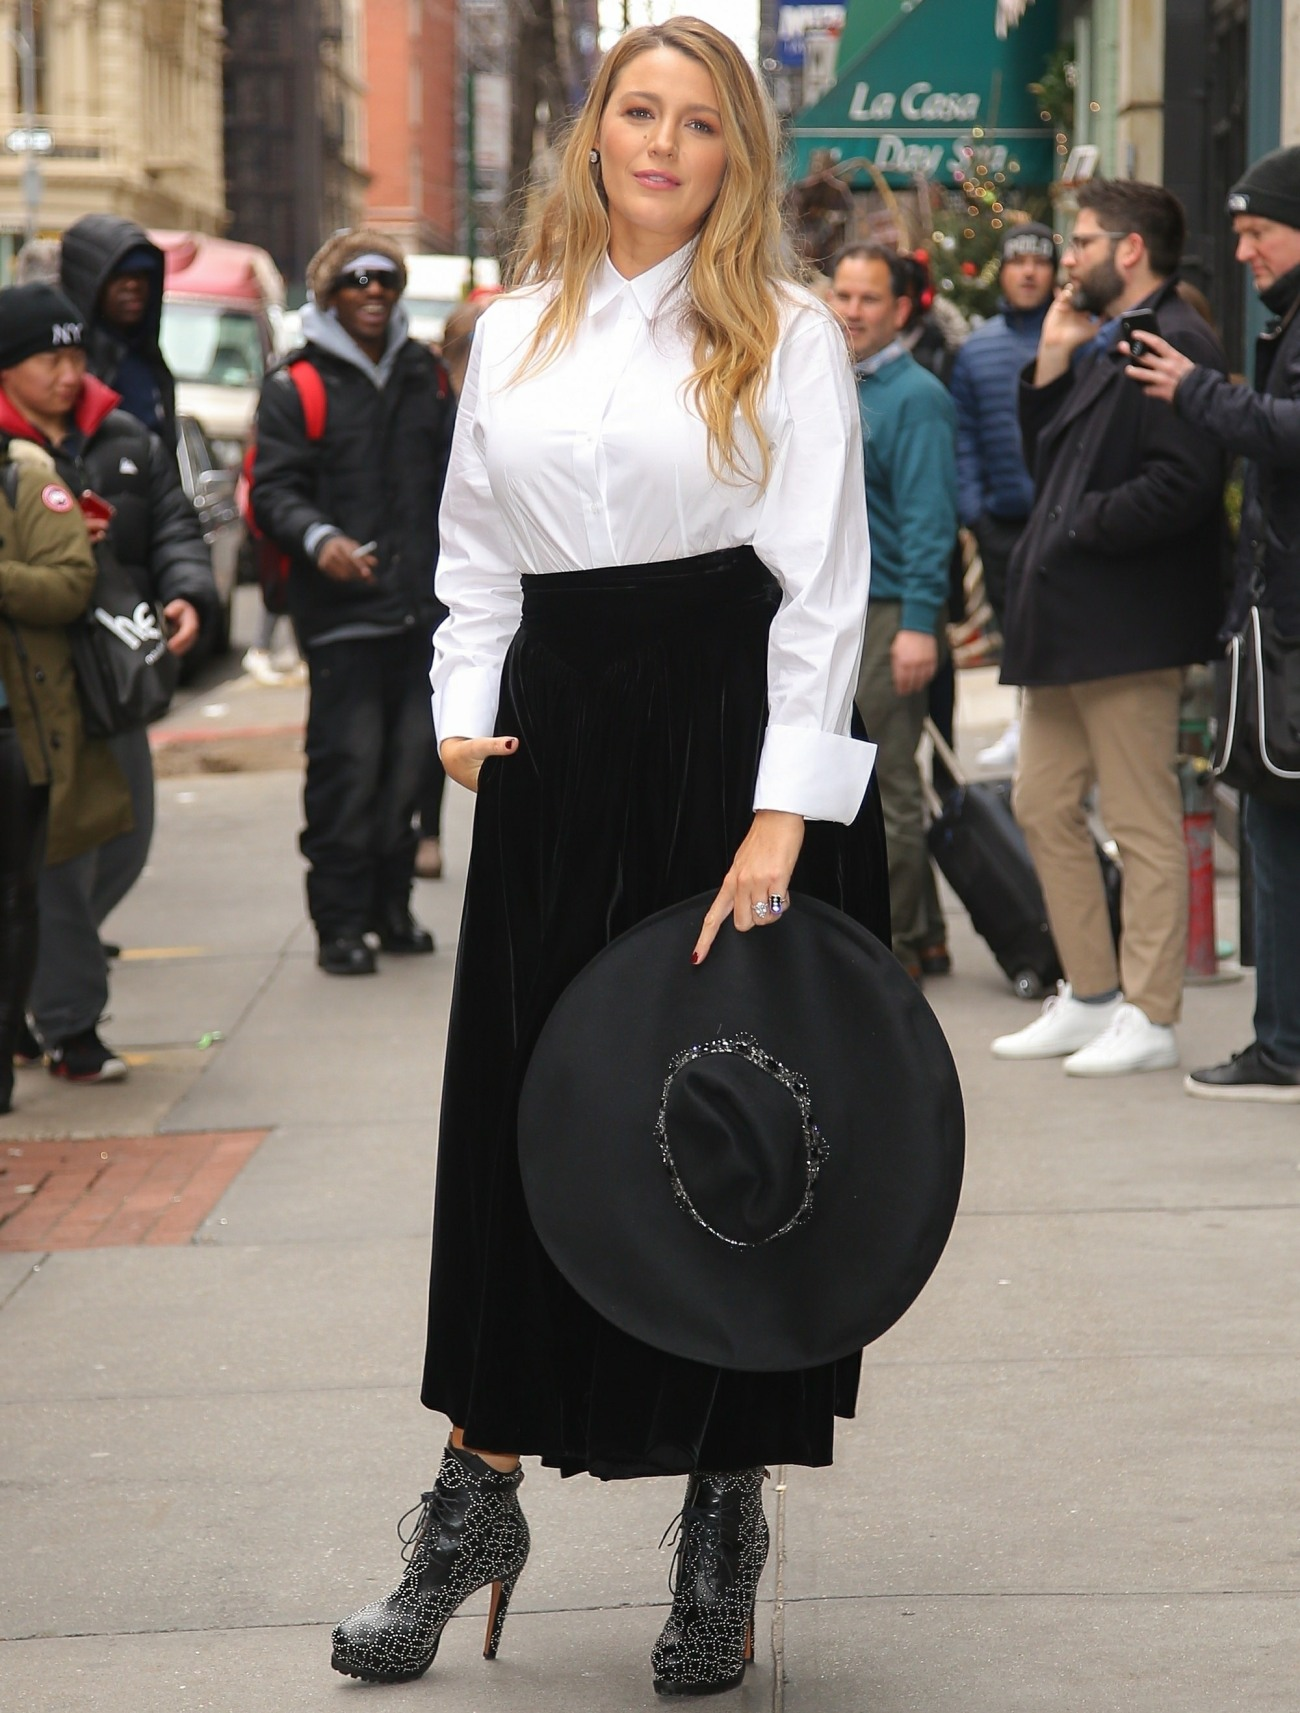 Hollywood star Blake Lively looks stunning in NYC